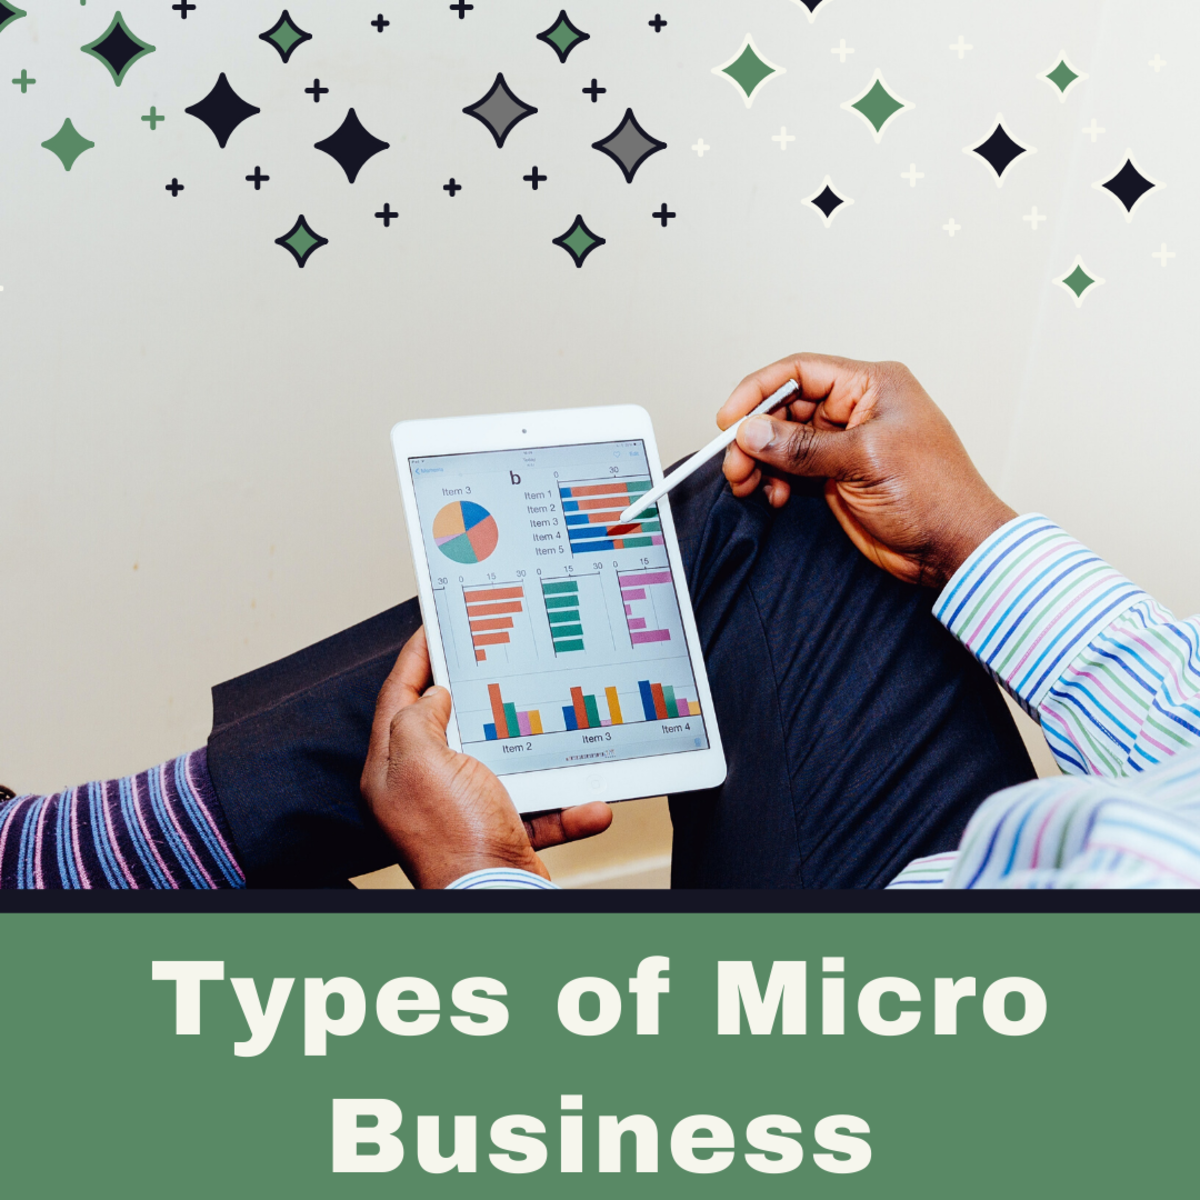 Explore the world of micro businesses and see if this type of business is right for you.